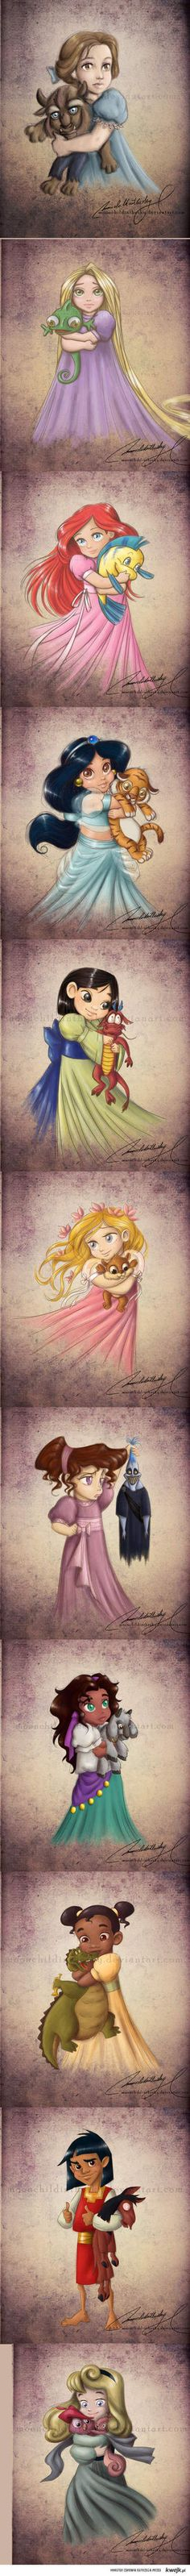 Awesome Disney Princesses by moonchildinthesky @ deviantart